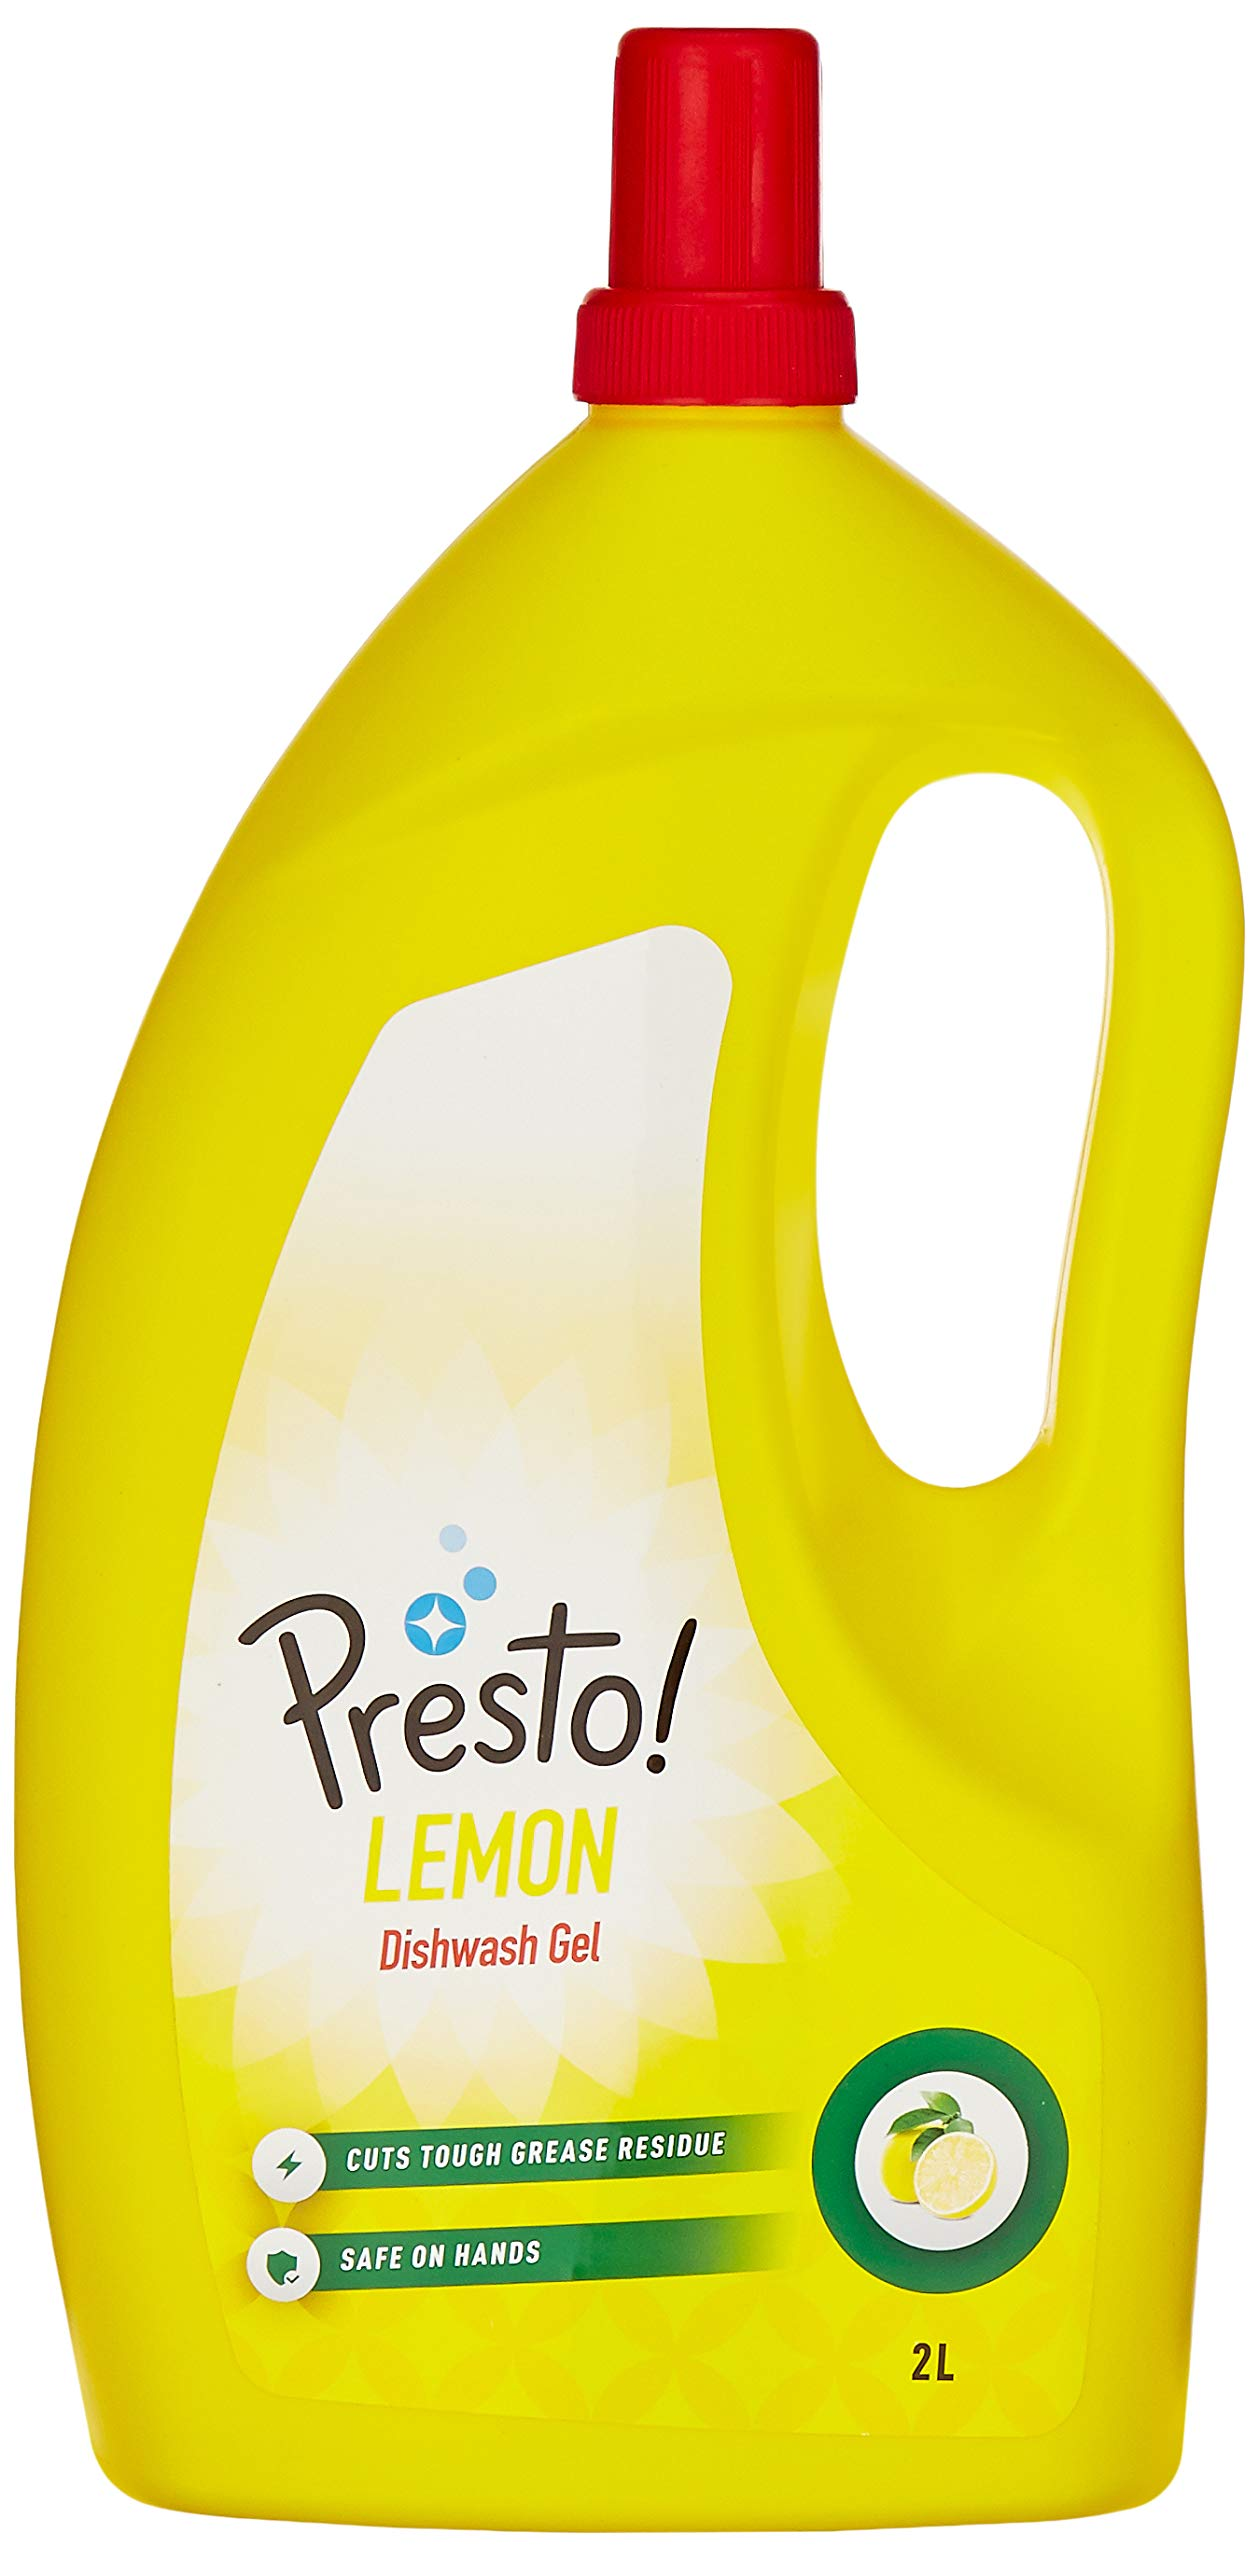 7e798c3a4a90f Amazon Brand - Presto! Dish Wash Gel - 2 L (Lemon)